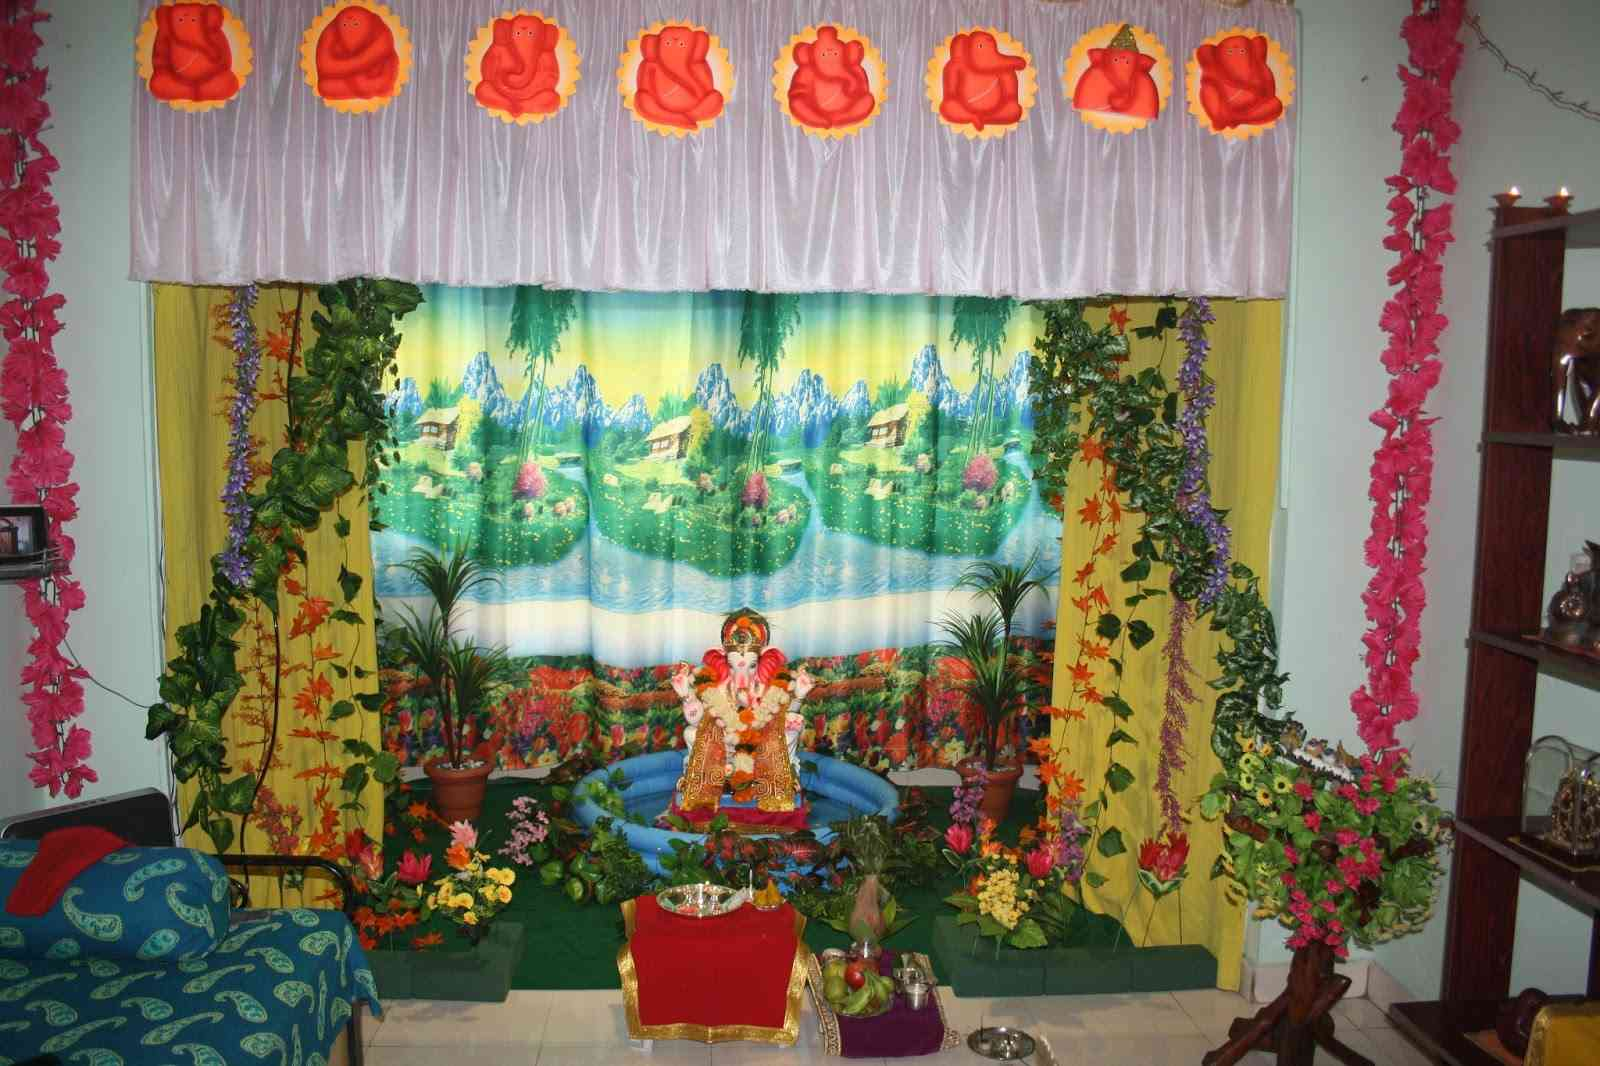 Ganpati Decoration Ideas at Home Images with Flowers ...